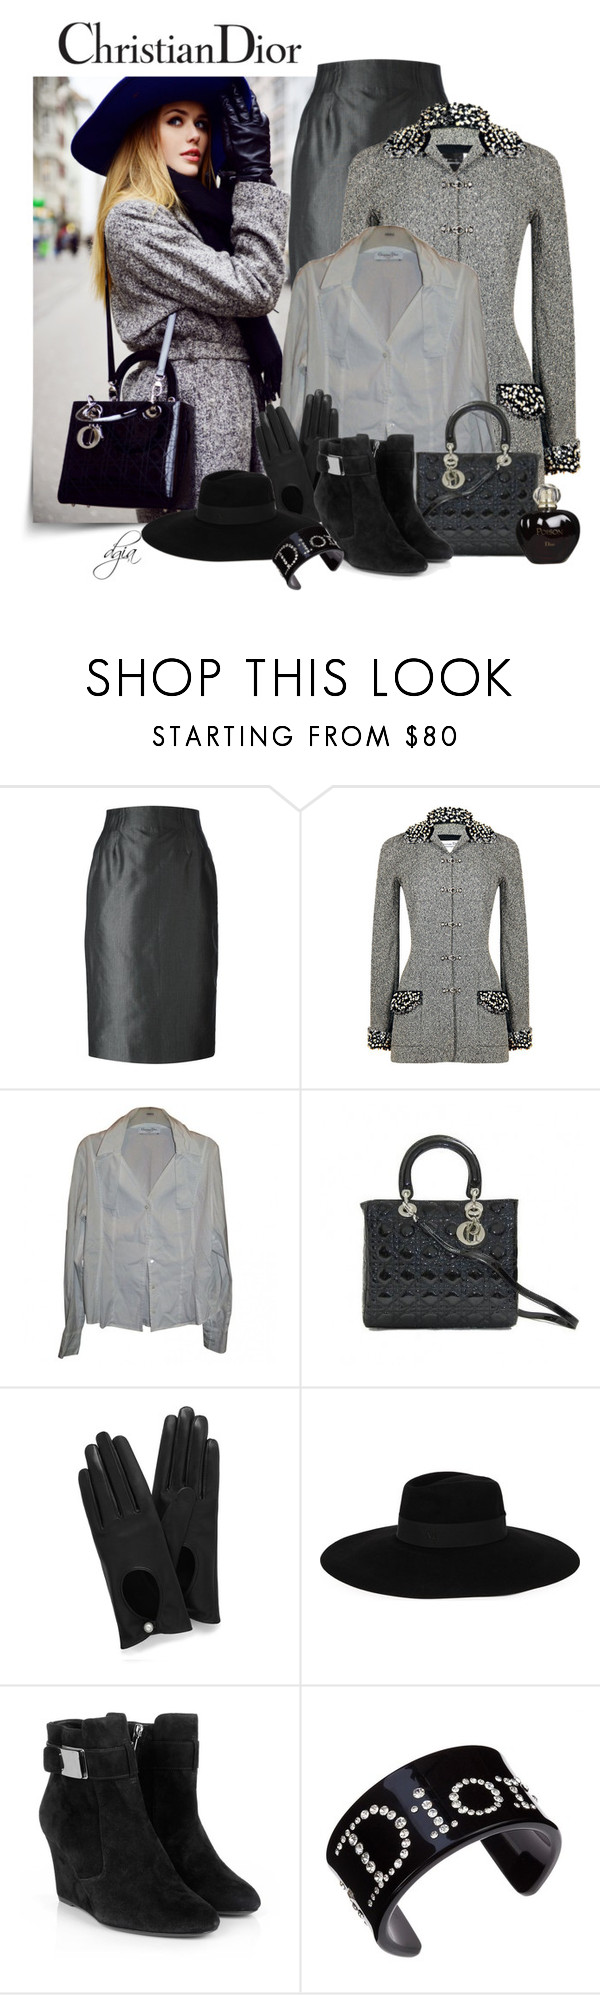 """Christian Dior"" by dgia ❤ liked on Polyvore featuring Christian Dior, Mulberry and Maison Michel"